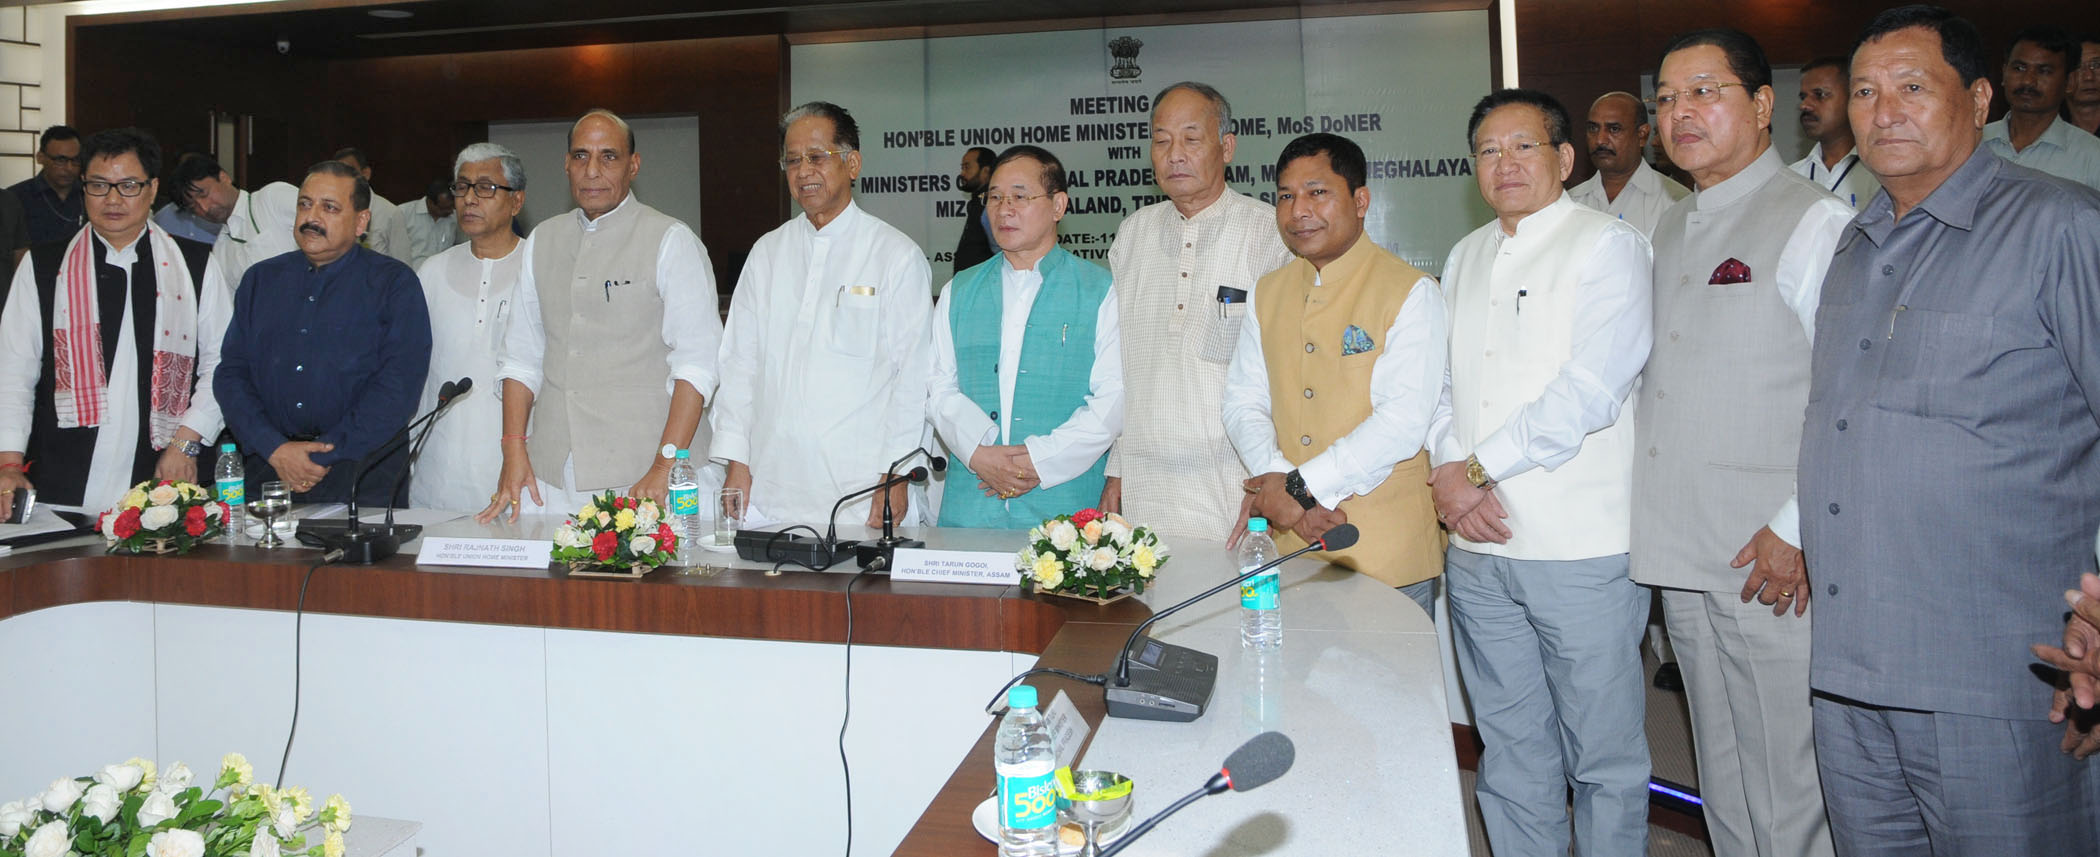 The Union Home Minister, Shri Rajnath Singh chaired the meeting of the Chief Ministers of Eight North Eastern States on Security & Development, in Guwahati on July 11, 2015. The Minister of State for Development of North Eastern Region (I/C), Prime Minister's Office, Personnel, Public Grievances & Pensions, Department of Atomic Energy, Department of Space, Dr. Jitendra Singh and the Minister of State for Home Affairs, Shri Kiren Rijiju are also seen.